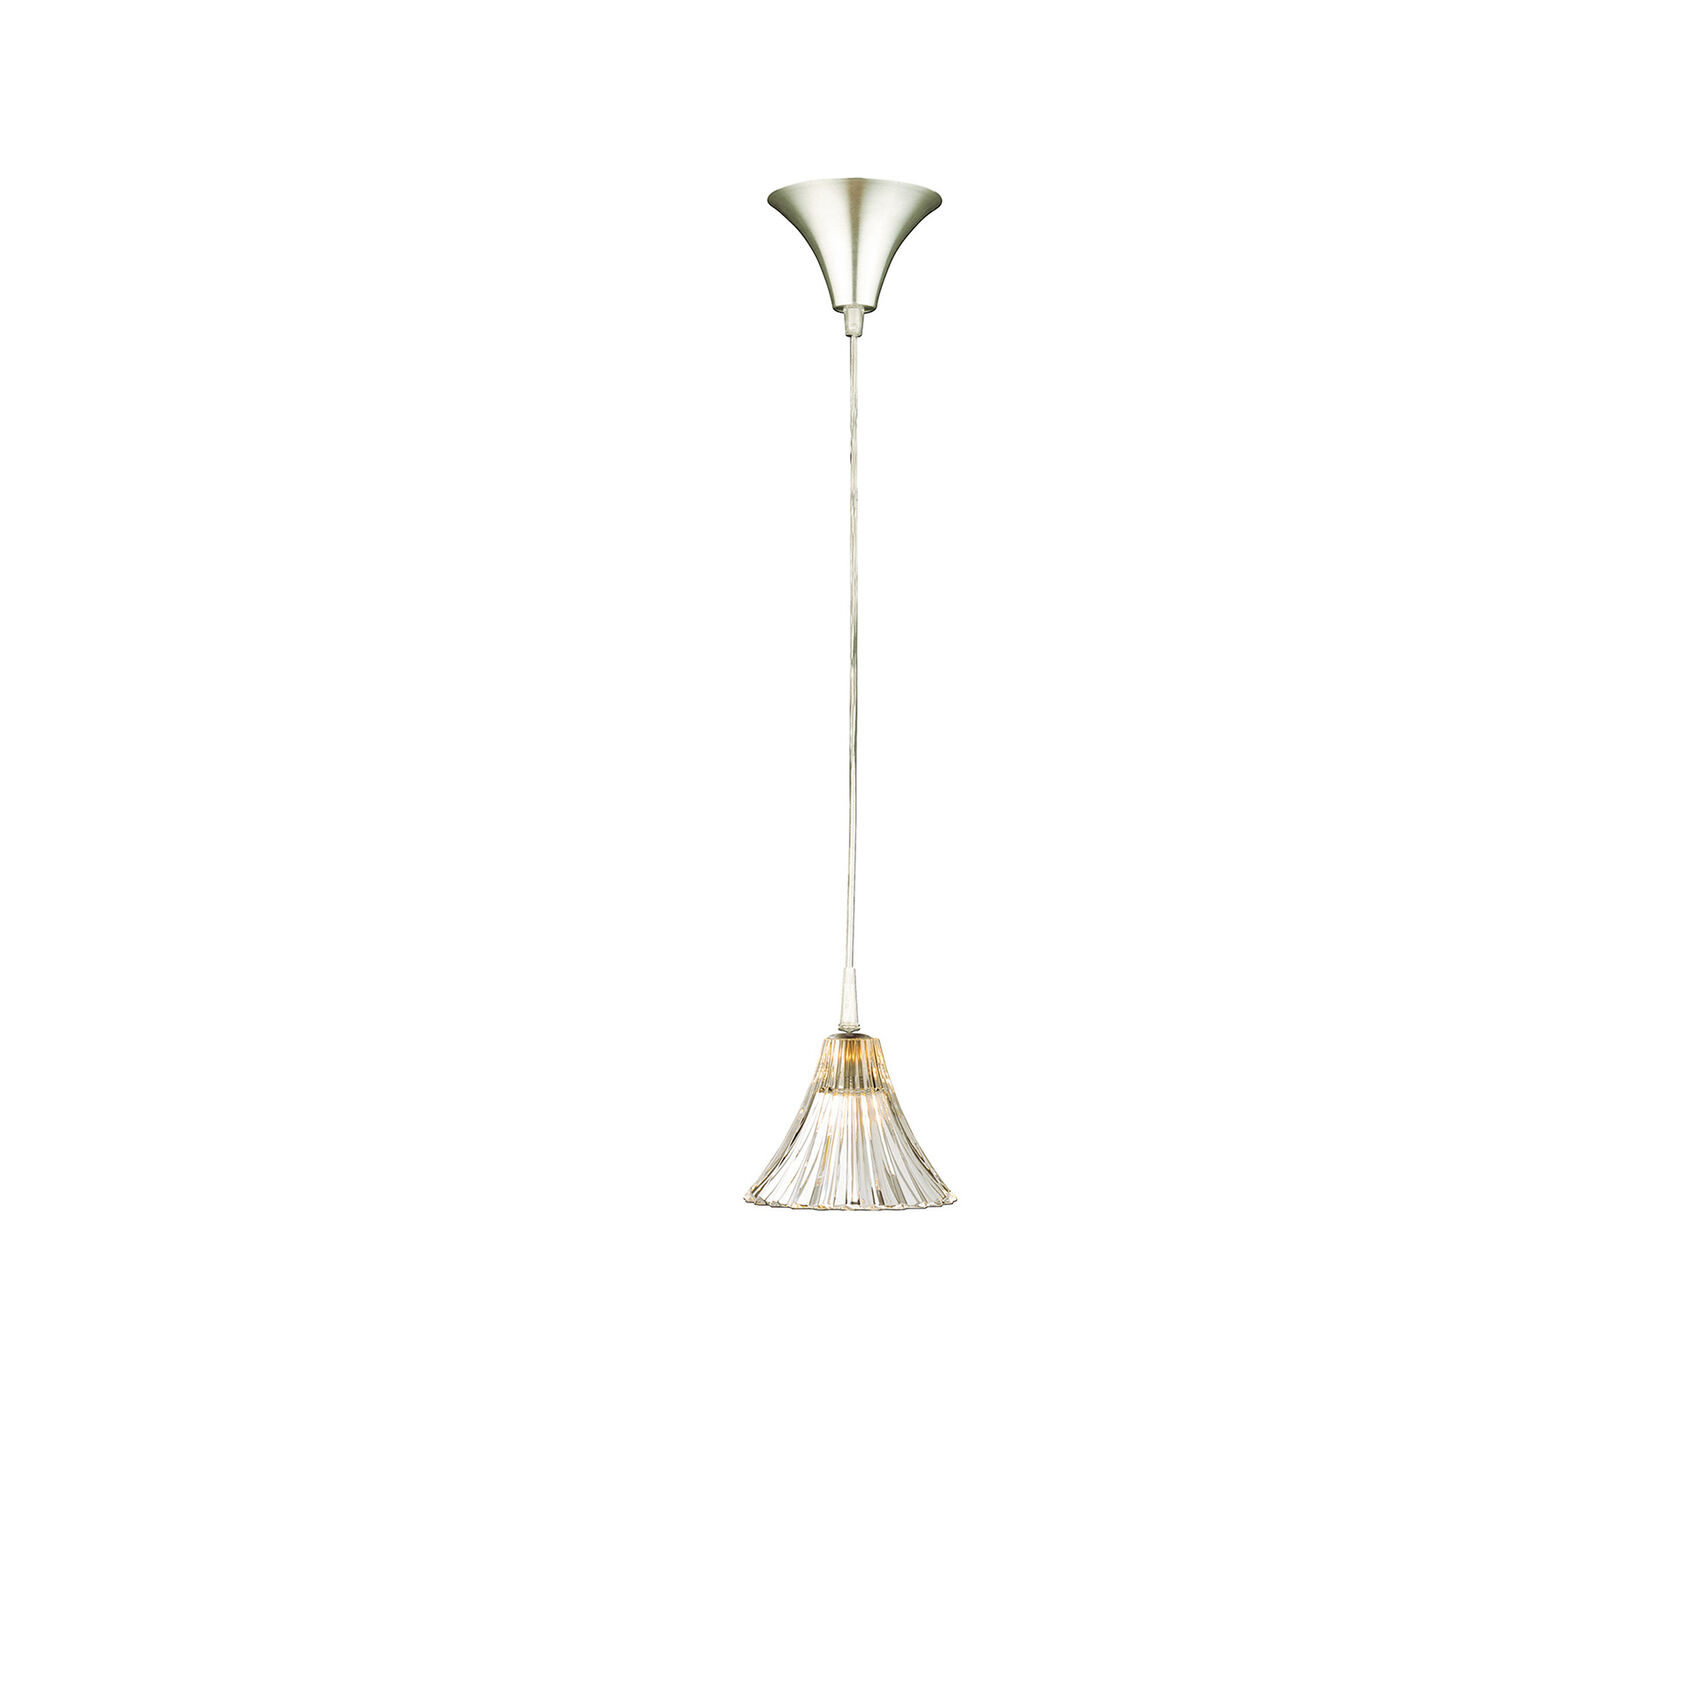 watt pix architectural index lens pendant cirrus pendants light suspension stick